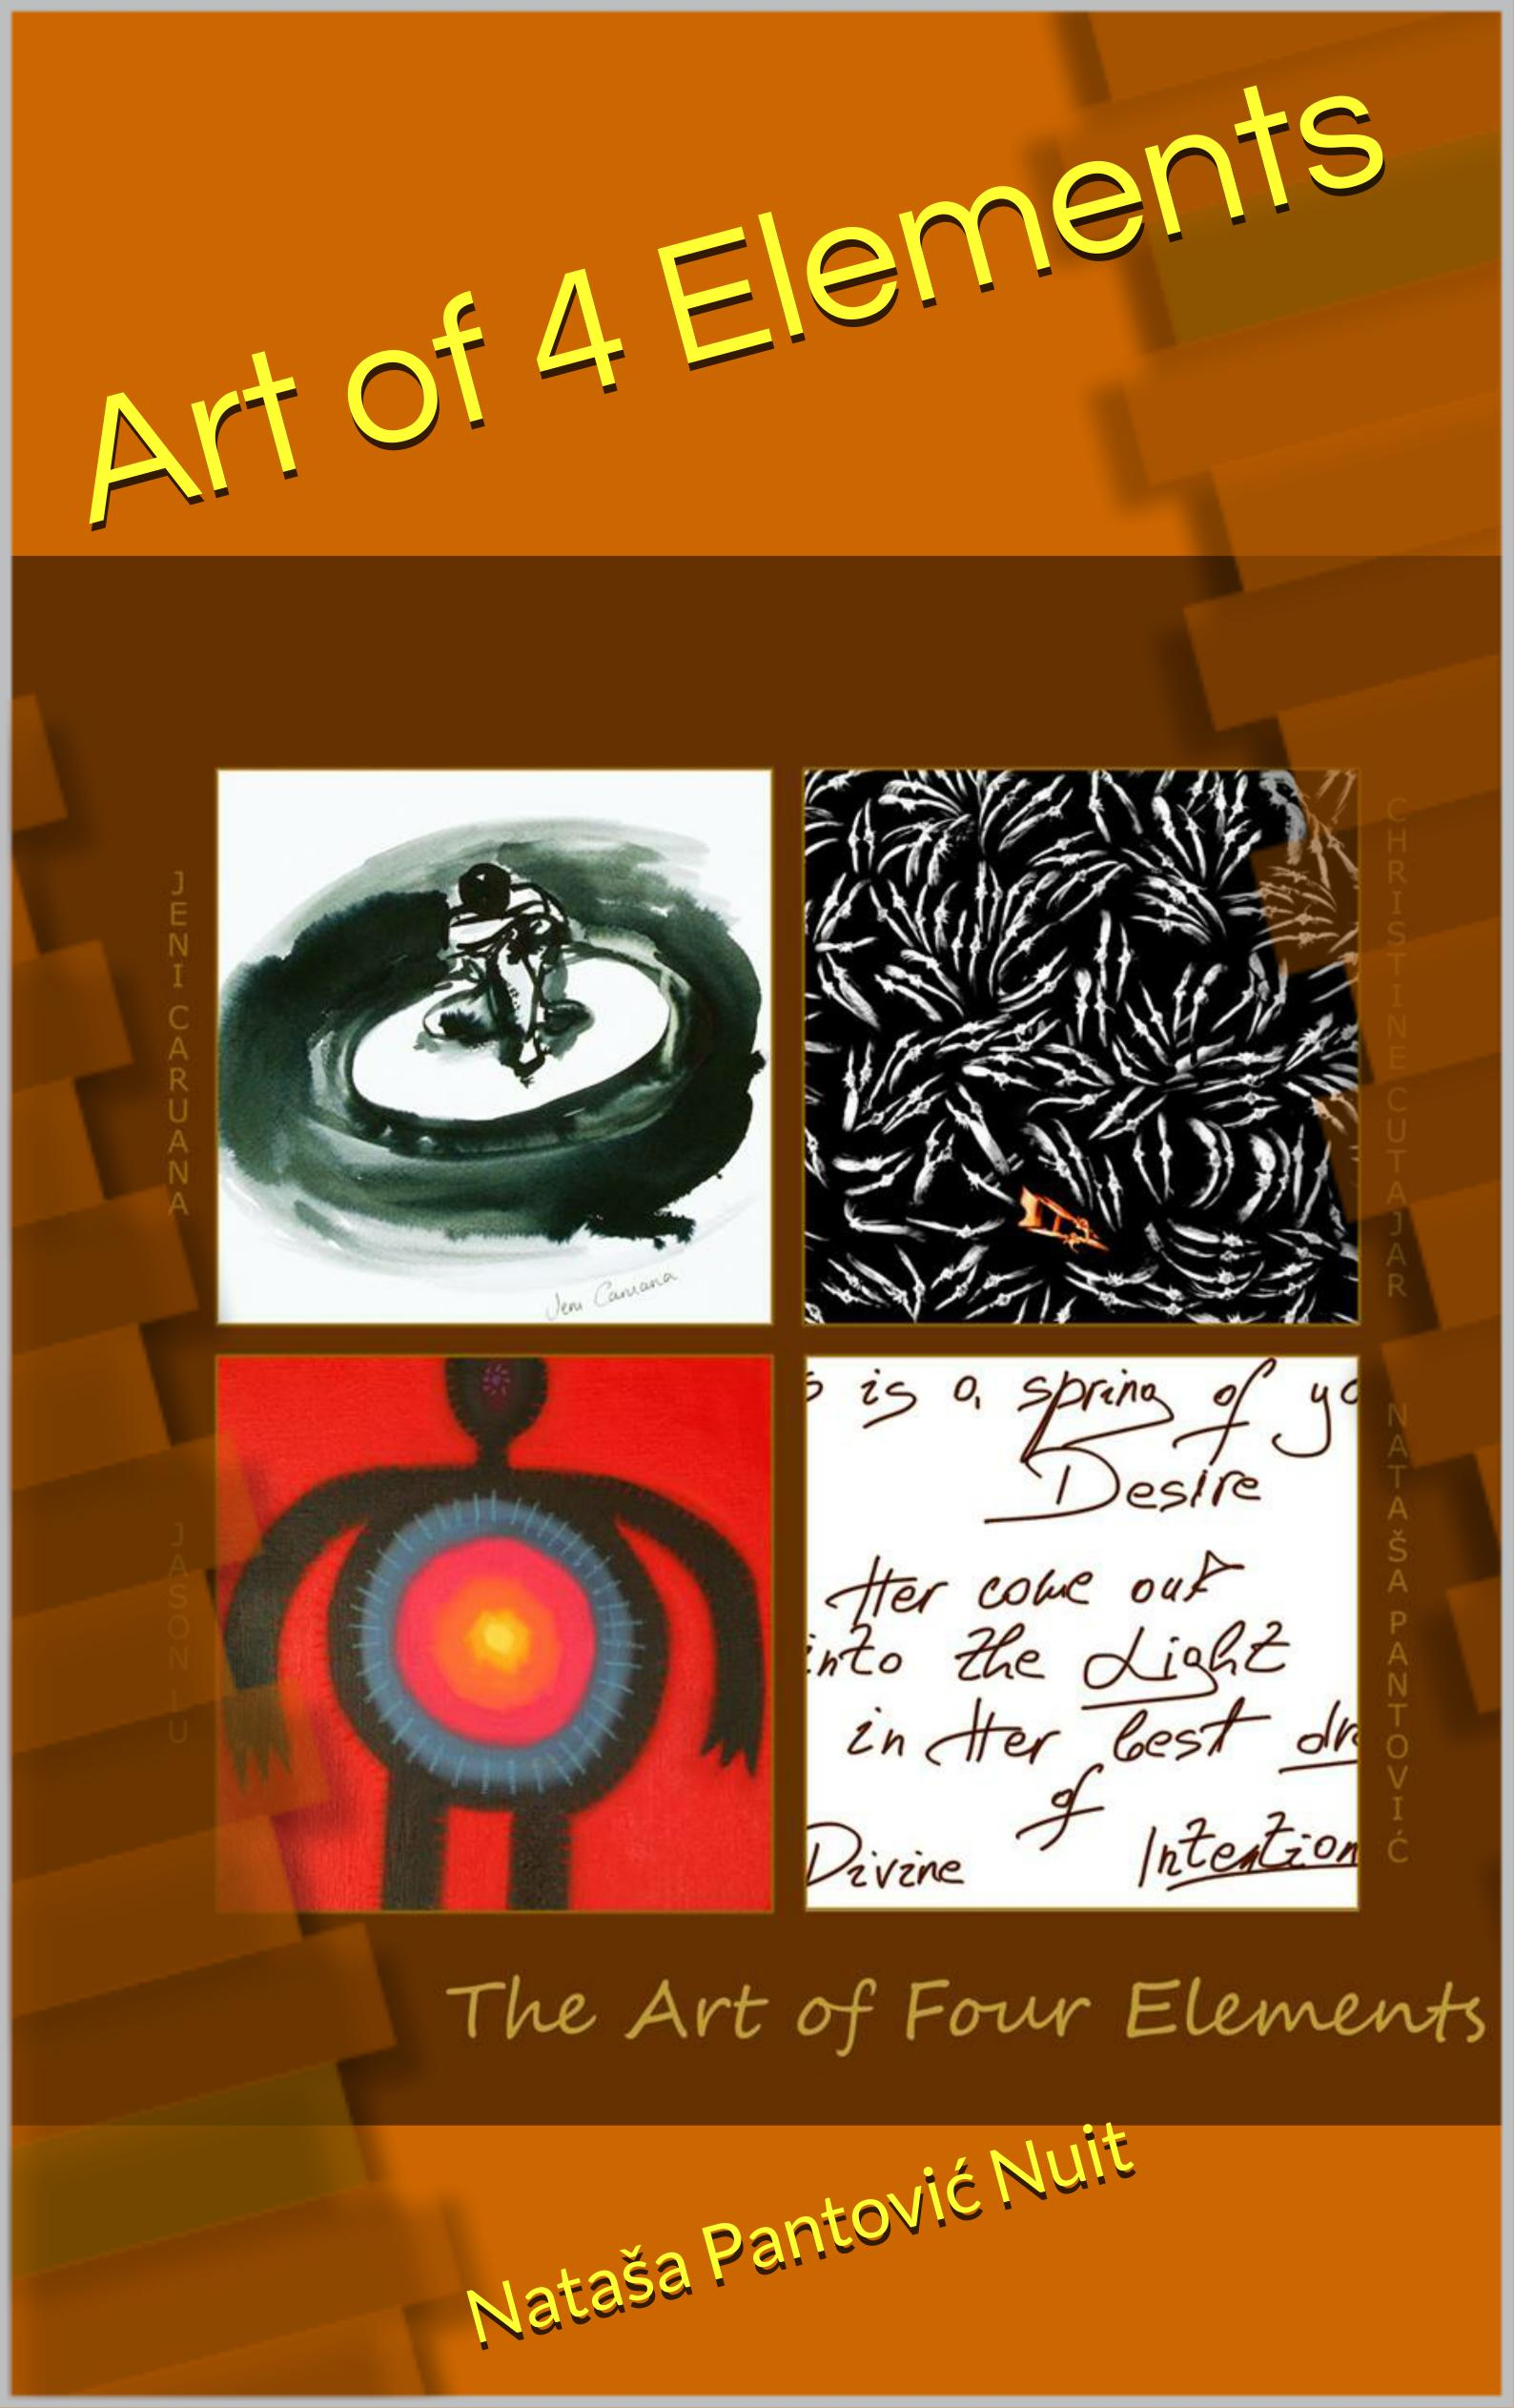 Art of 4 Elements book image